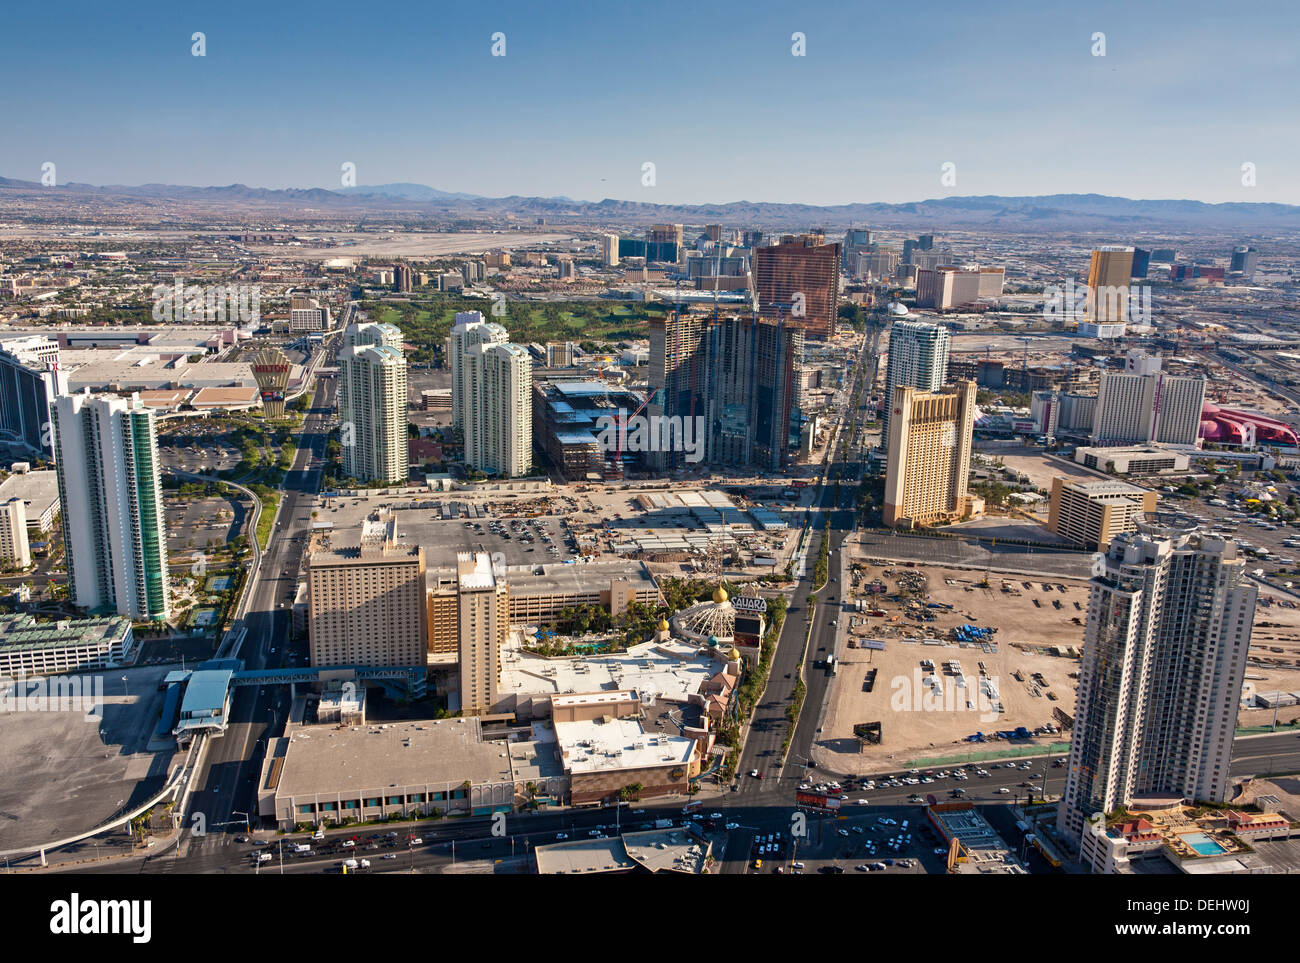 Las Vegas Nevada USA The Strip viewed from the tower of the Stratosphere Casino and Hotel with Hilton left and Sahara. JMH5458 - Stock Image